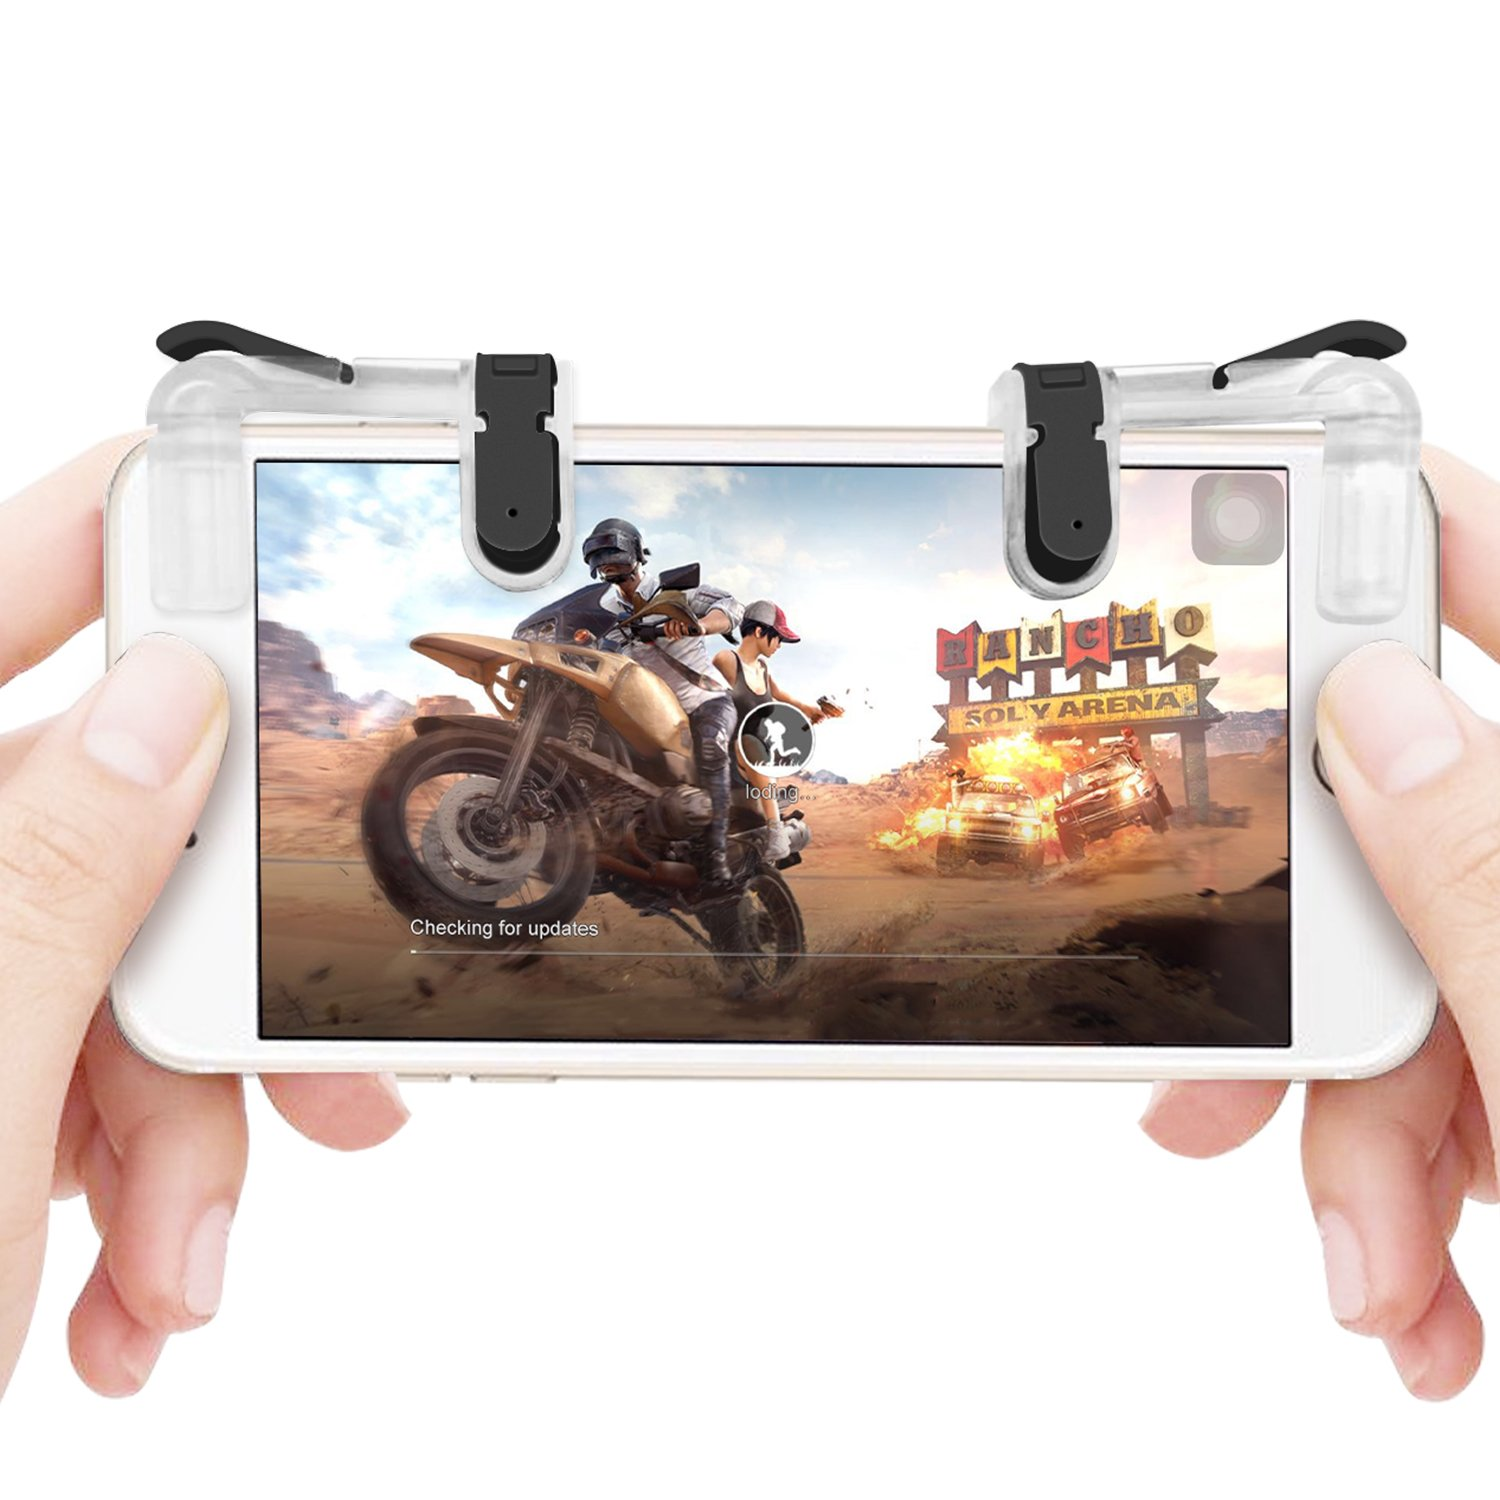 Mobile Game Controller Sensitive Shoot And Aim Buttons L1 R1 Sharp Shooter Pubg Joystick Rule Of Survival Versi 3 L1r1 For Fortnite Rules Survial Android Ios System 1 Pair Cell